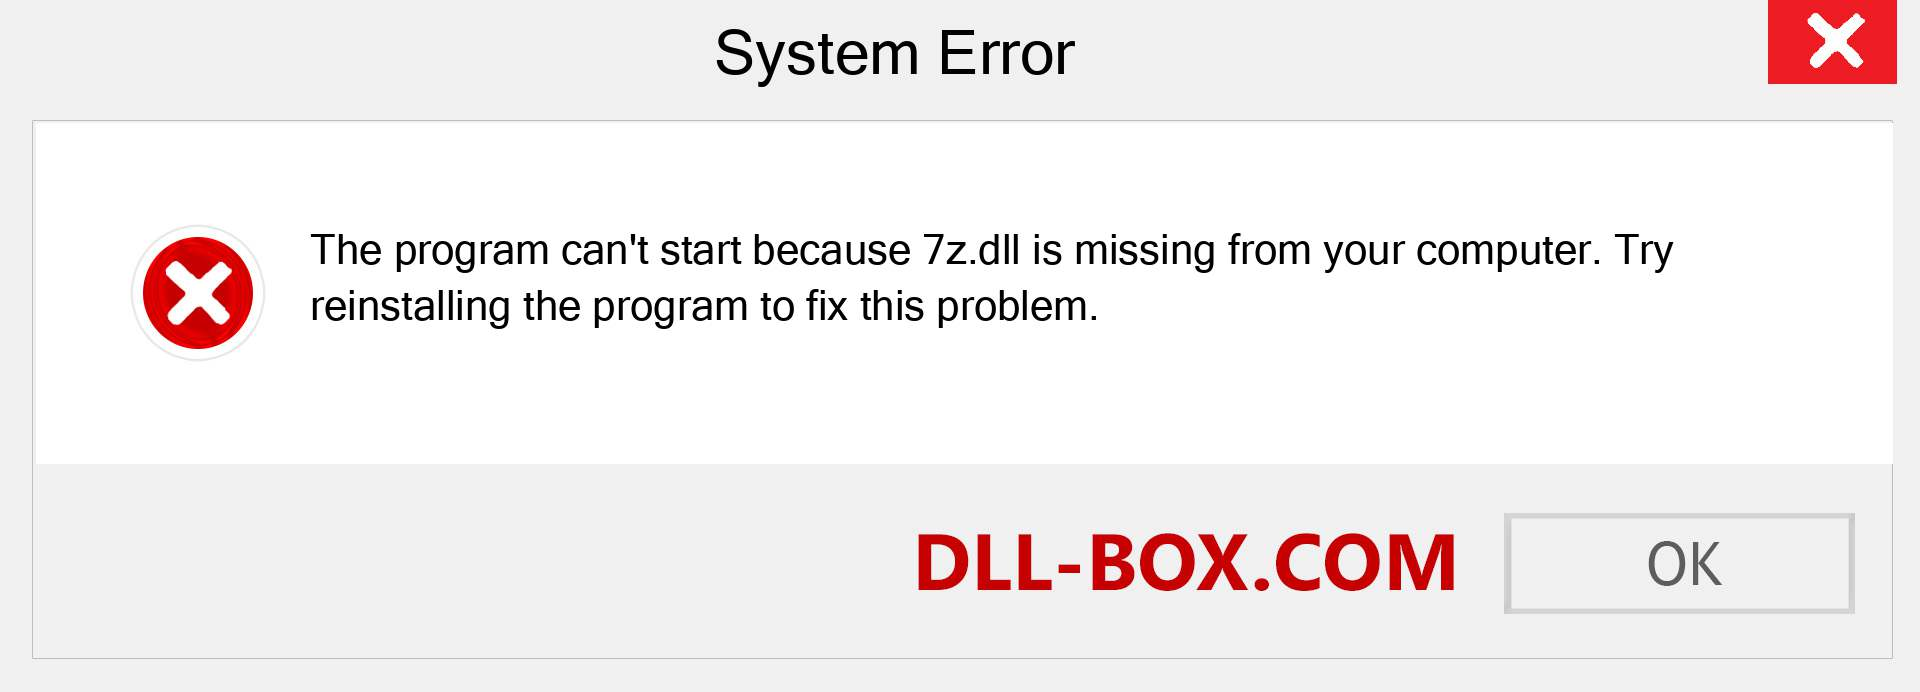 7z.dll file is missing?. Download for Windows 7, 8, 10 - Fix  7z dll Missing Error on Windows, photos, images